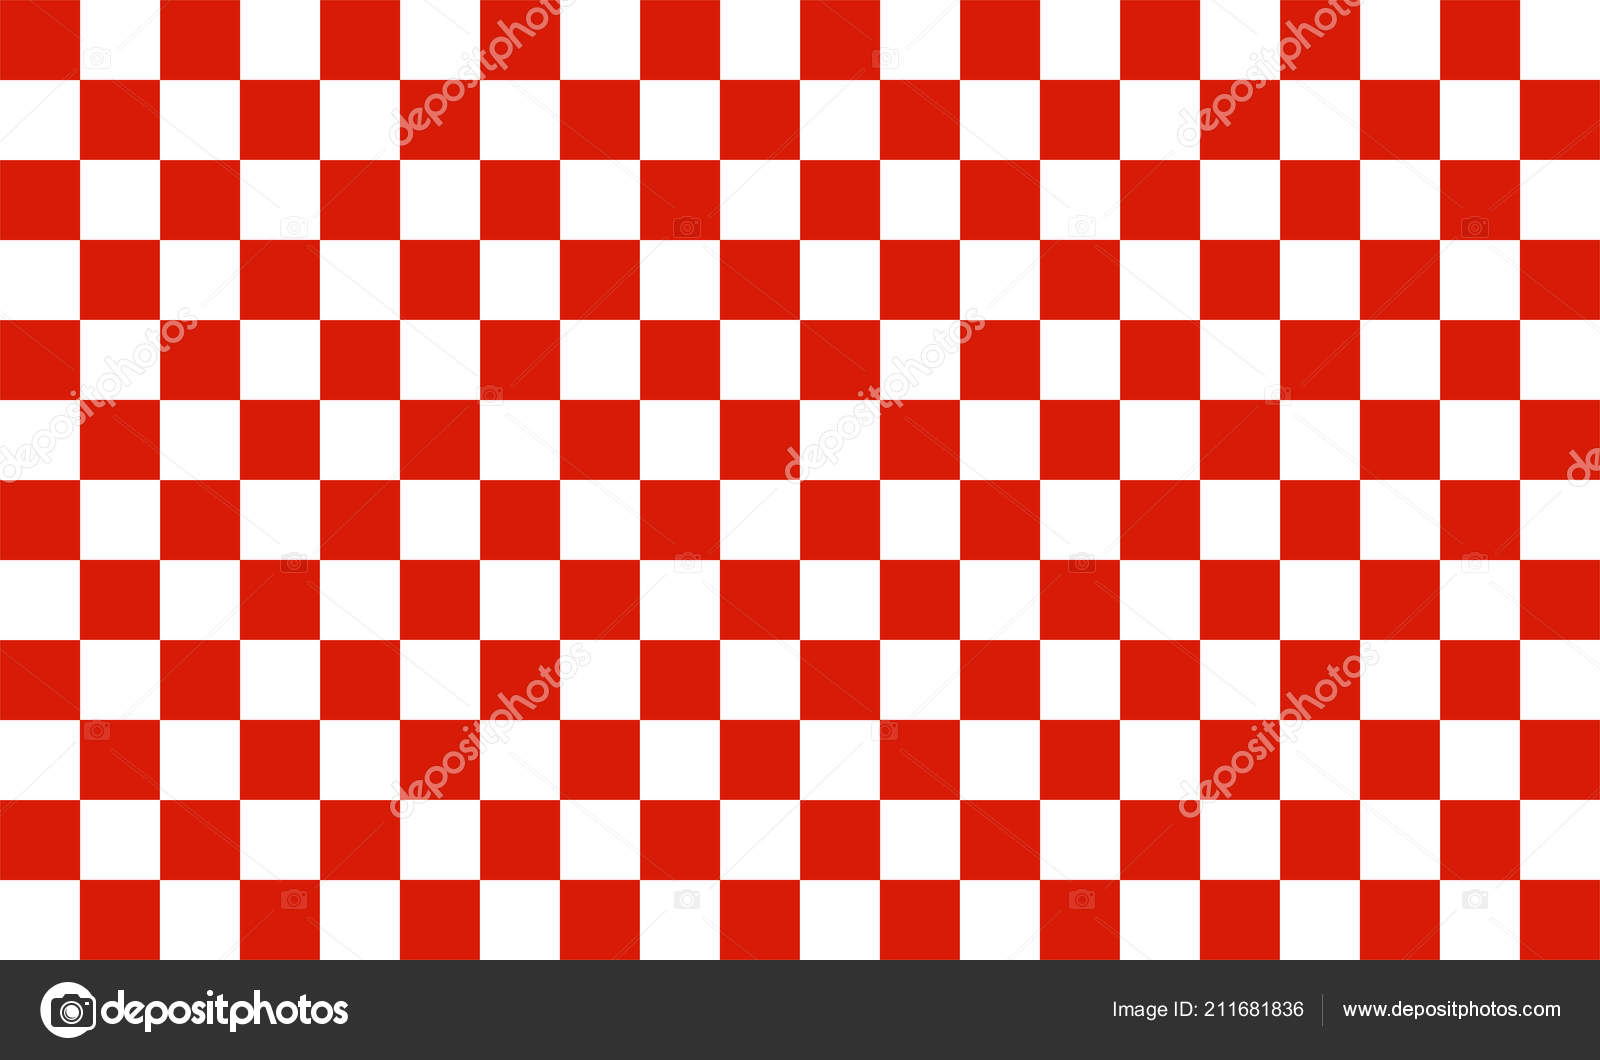 Background: red and white checkered | Red White Checkered